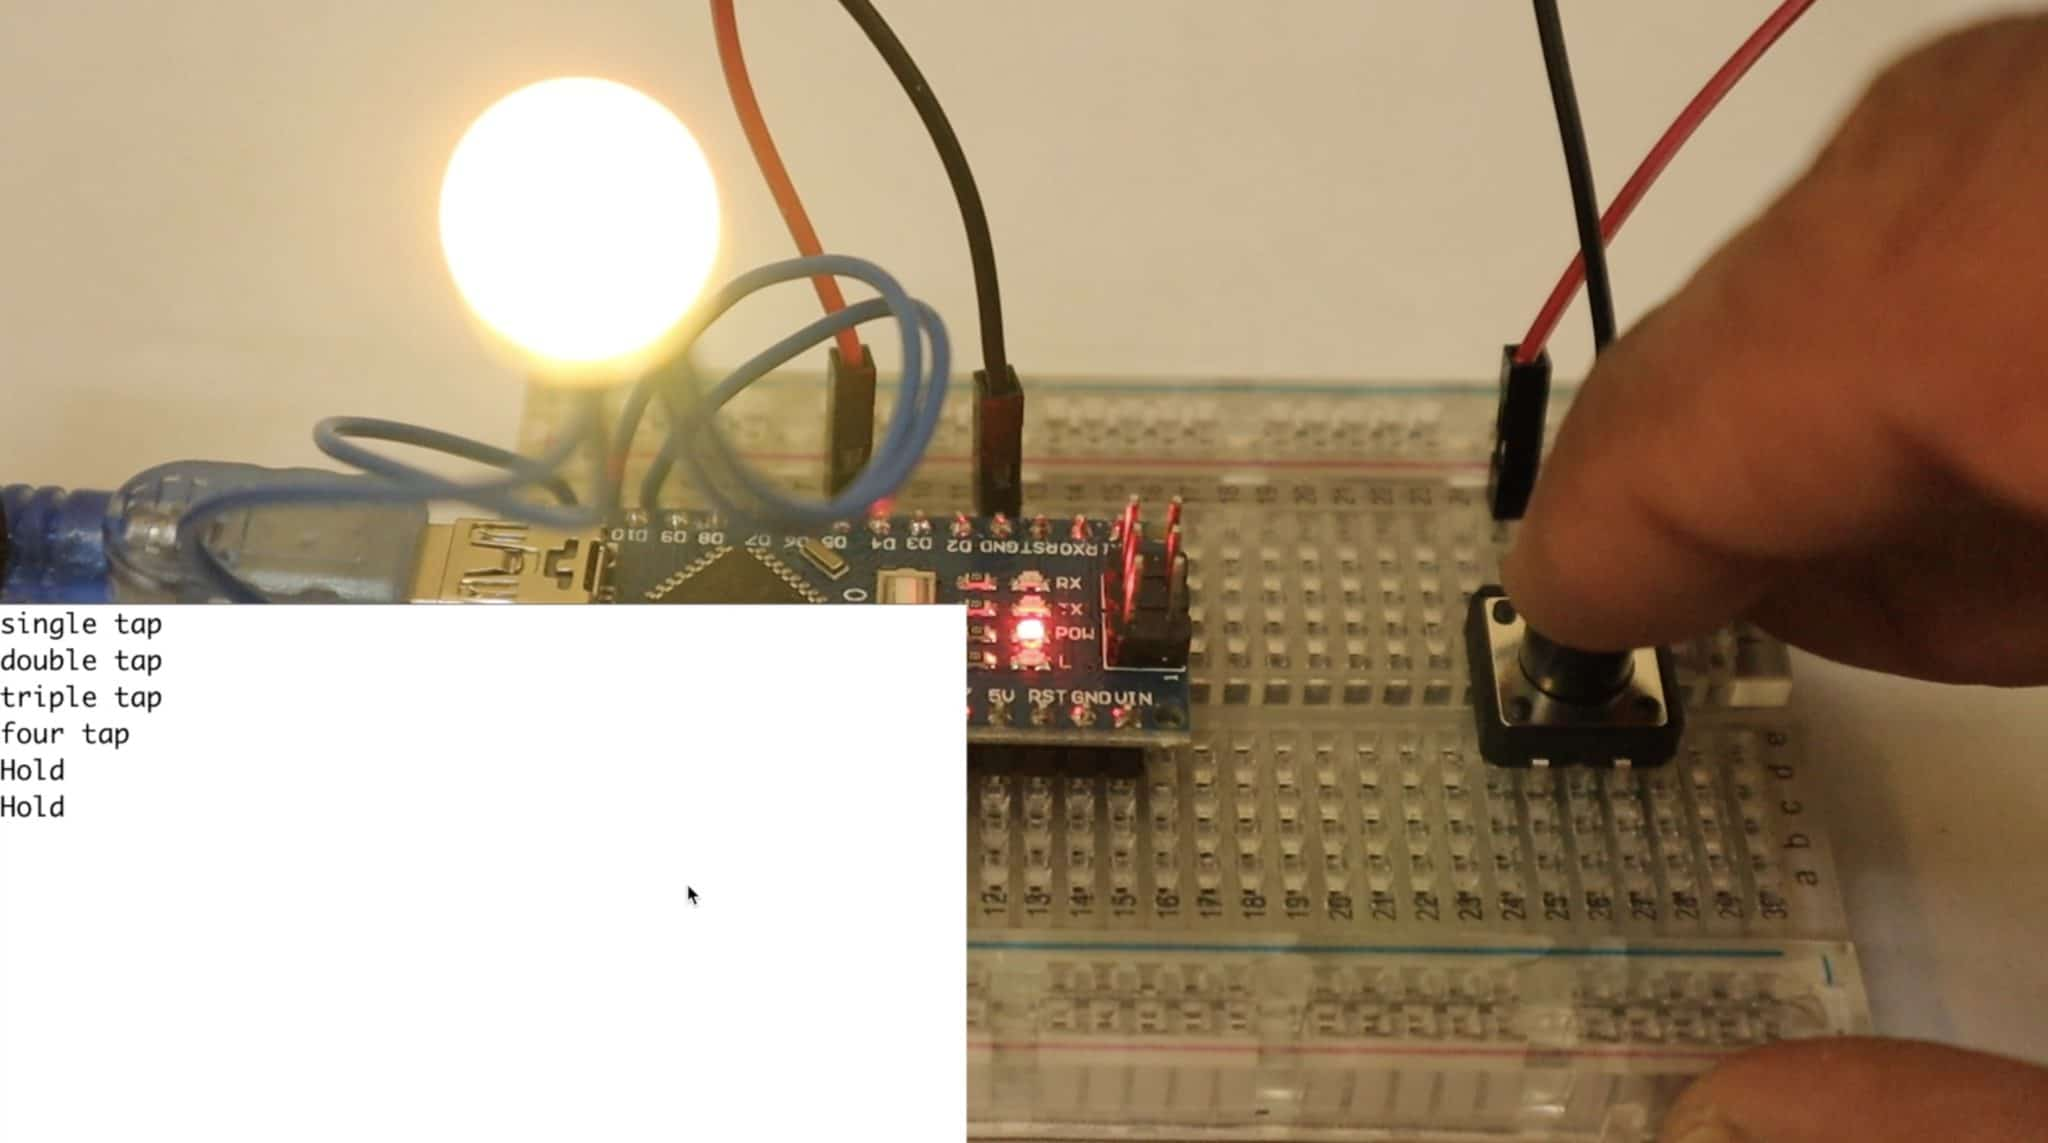 Single Switch Multiple Functions